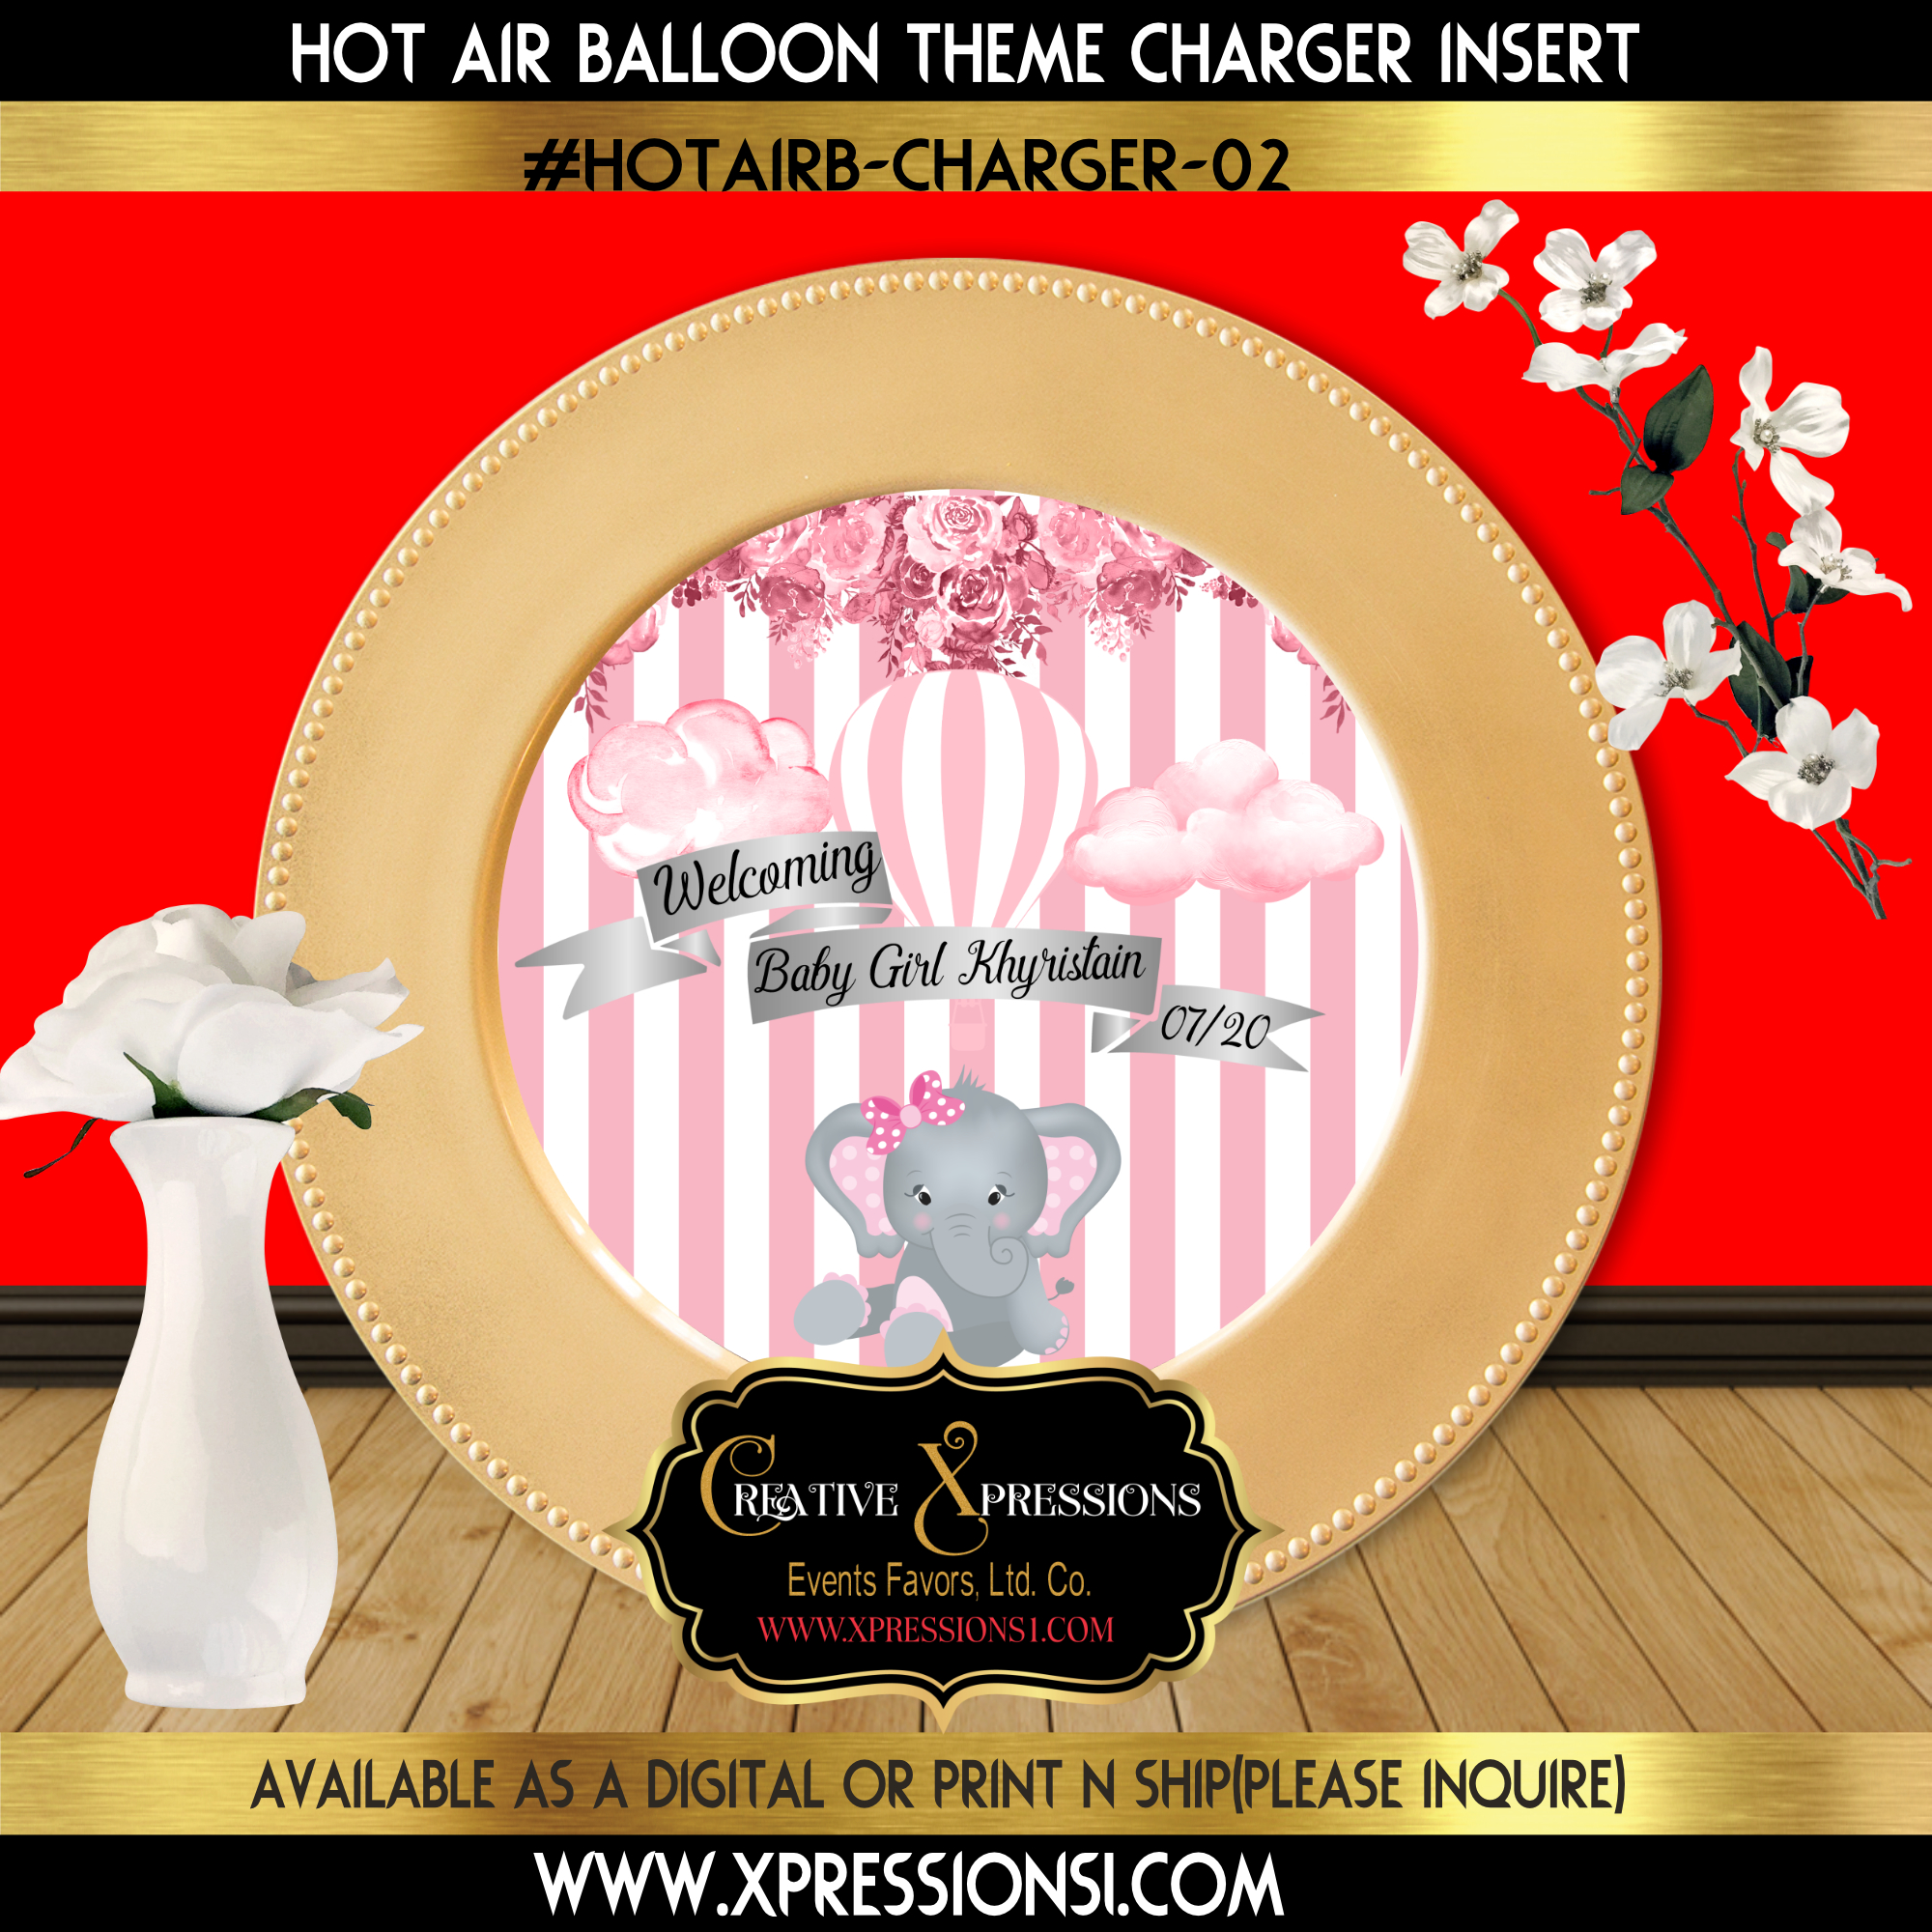 Pink Hot Air Balloon with Elephant Charger Insert